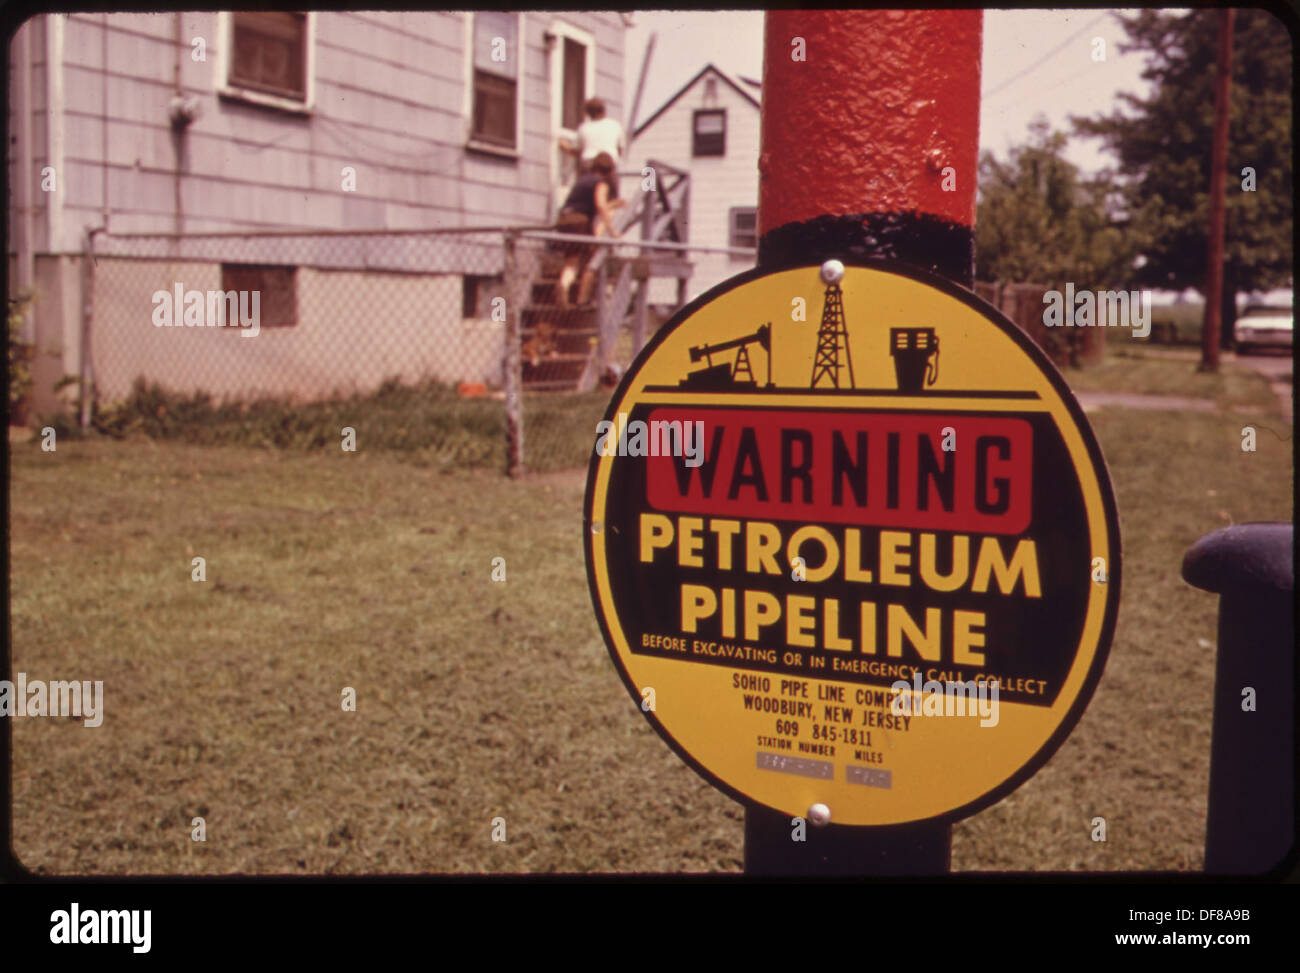 SIGN ON PIPE SET IN LAWN READS, WARNING. PETROLEUM PIPELINE. THE WOODBRIDGE COMMUNITY STRONGLY OBJECTED TO HAVING... 552006 - Stock Image